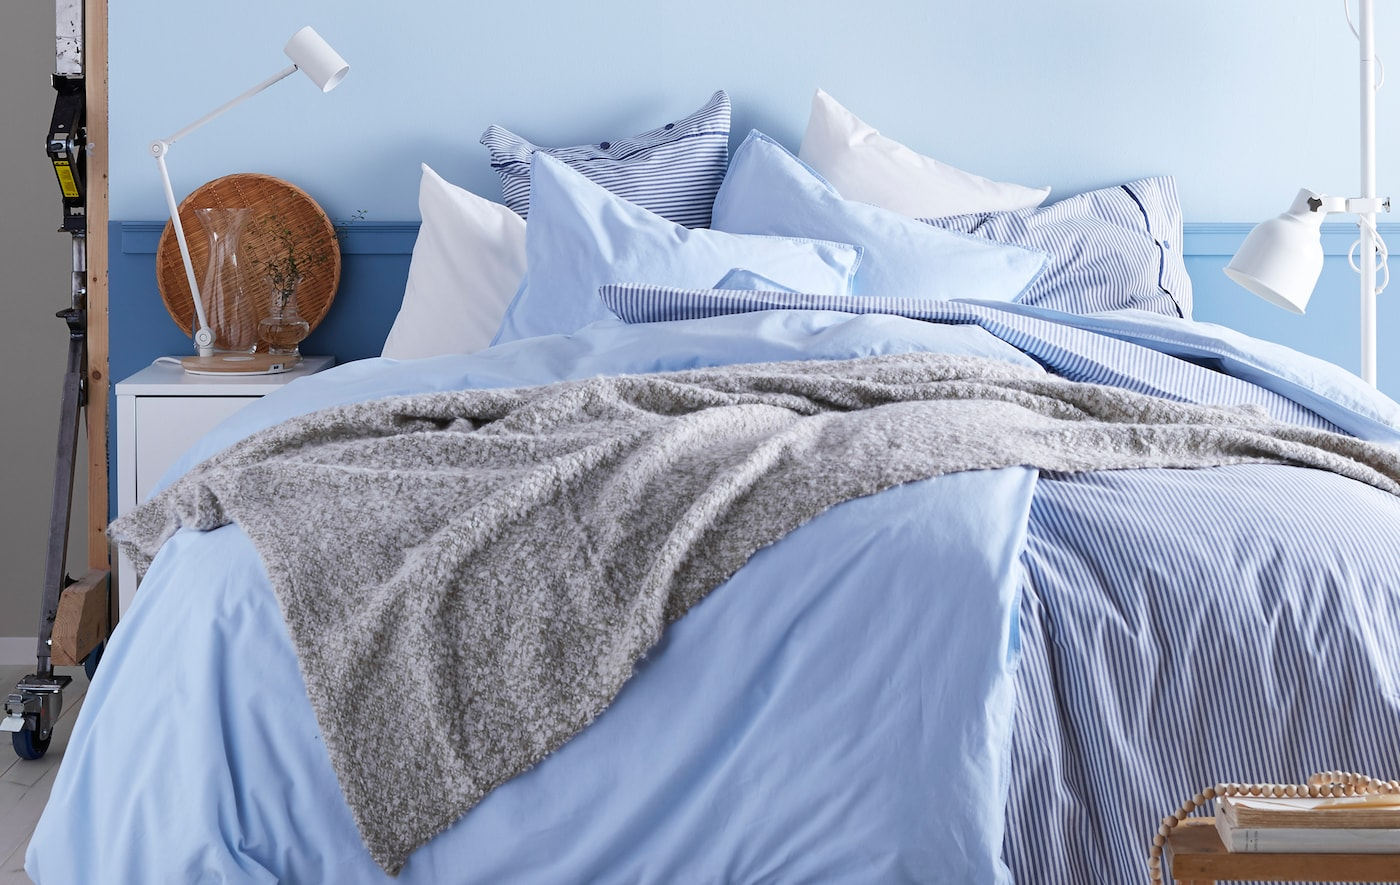 A bedroom with a color scheme of whites and light blues, with lots of blankets and pillows.